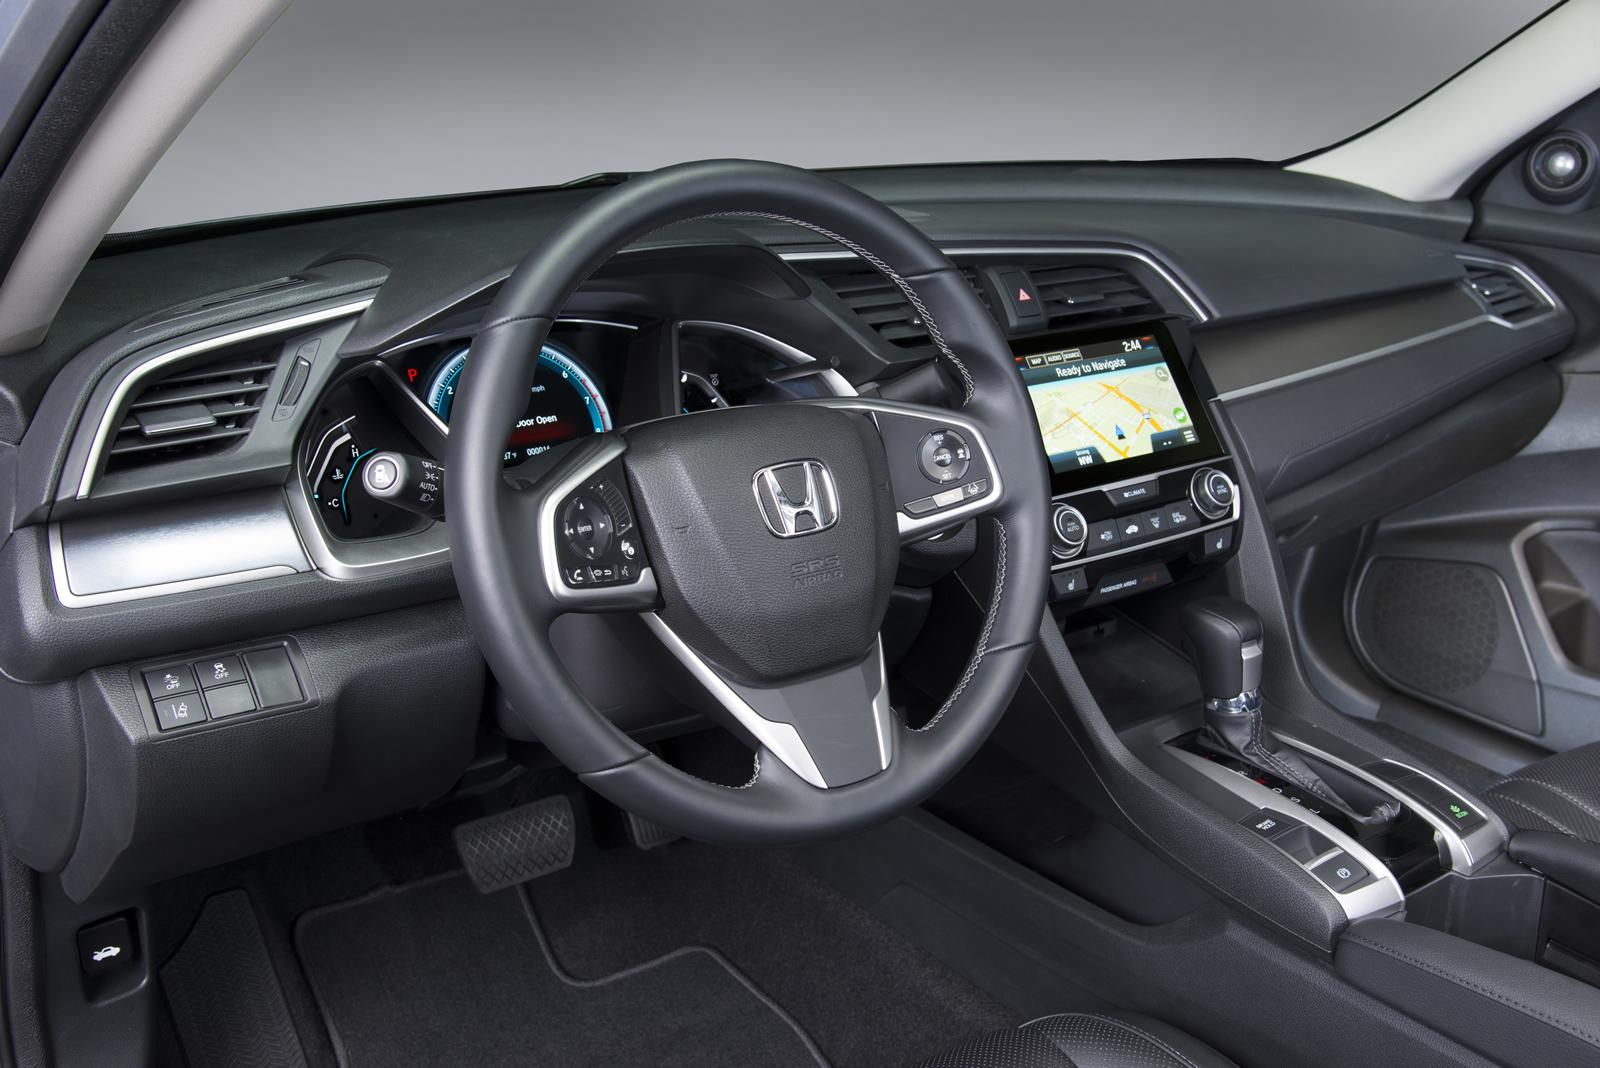 2018 Honda Civic Priced $100 Higher Than 2017 Model - autoevolution